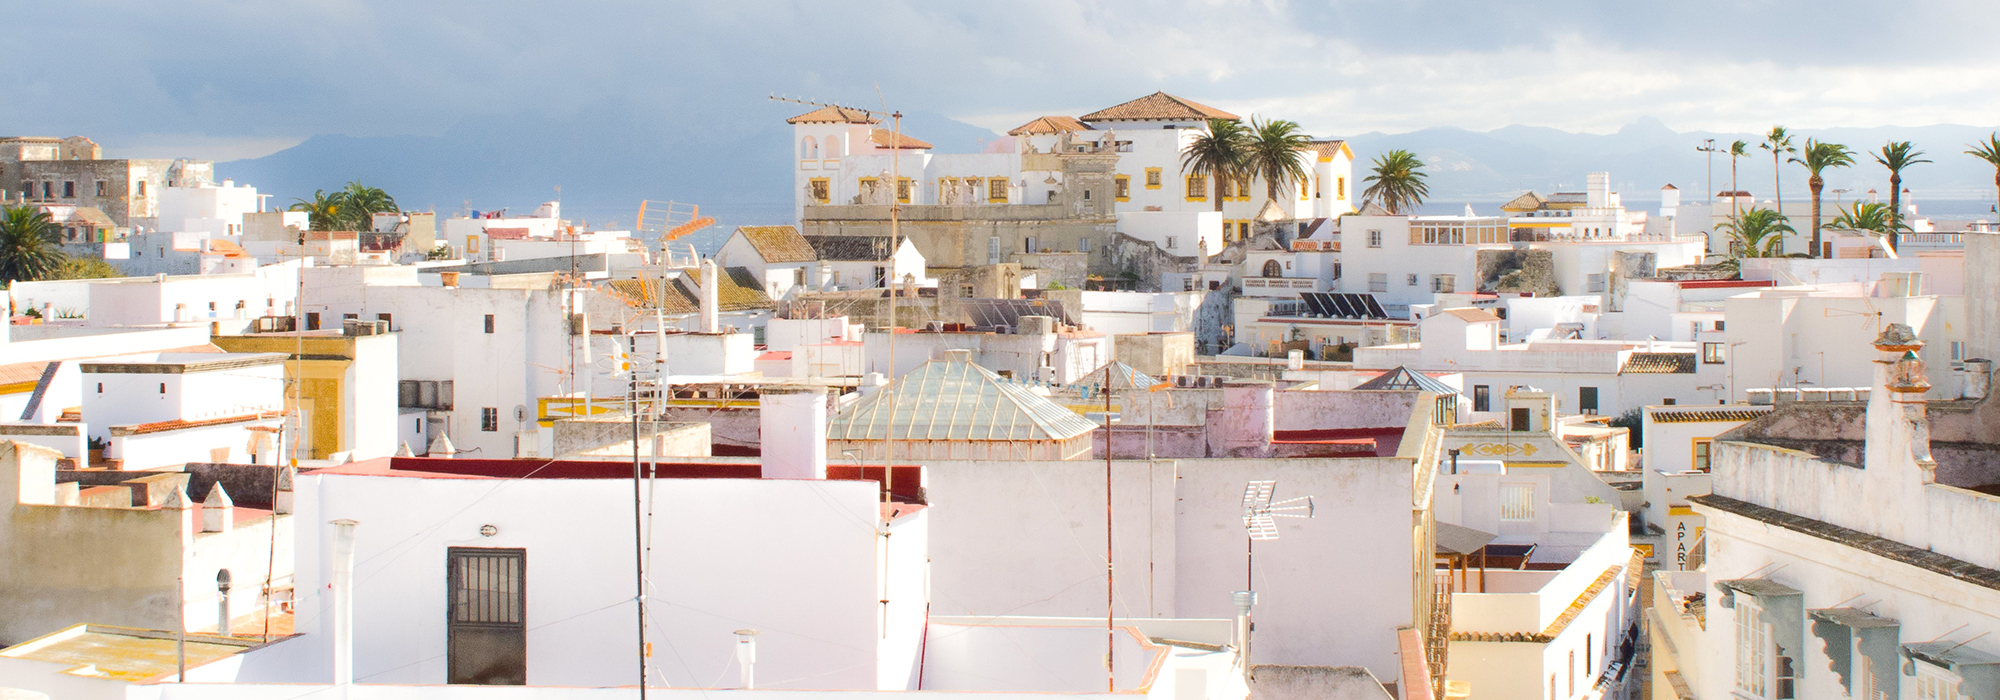 Centric flat in the old town of Tarifa